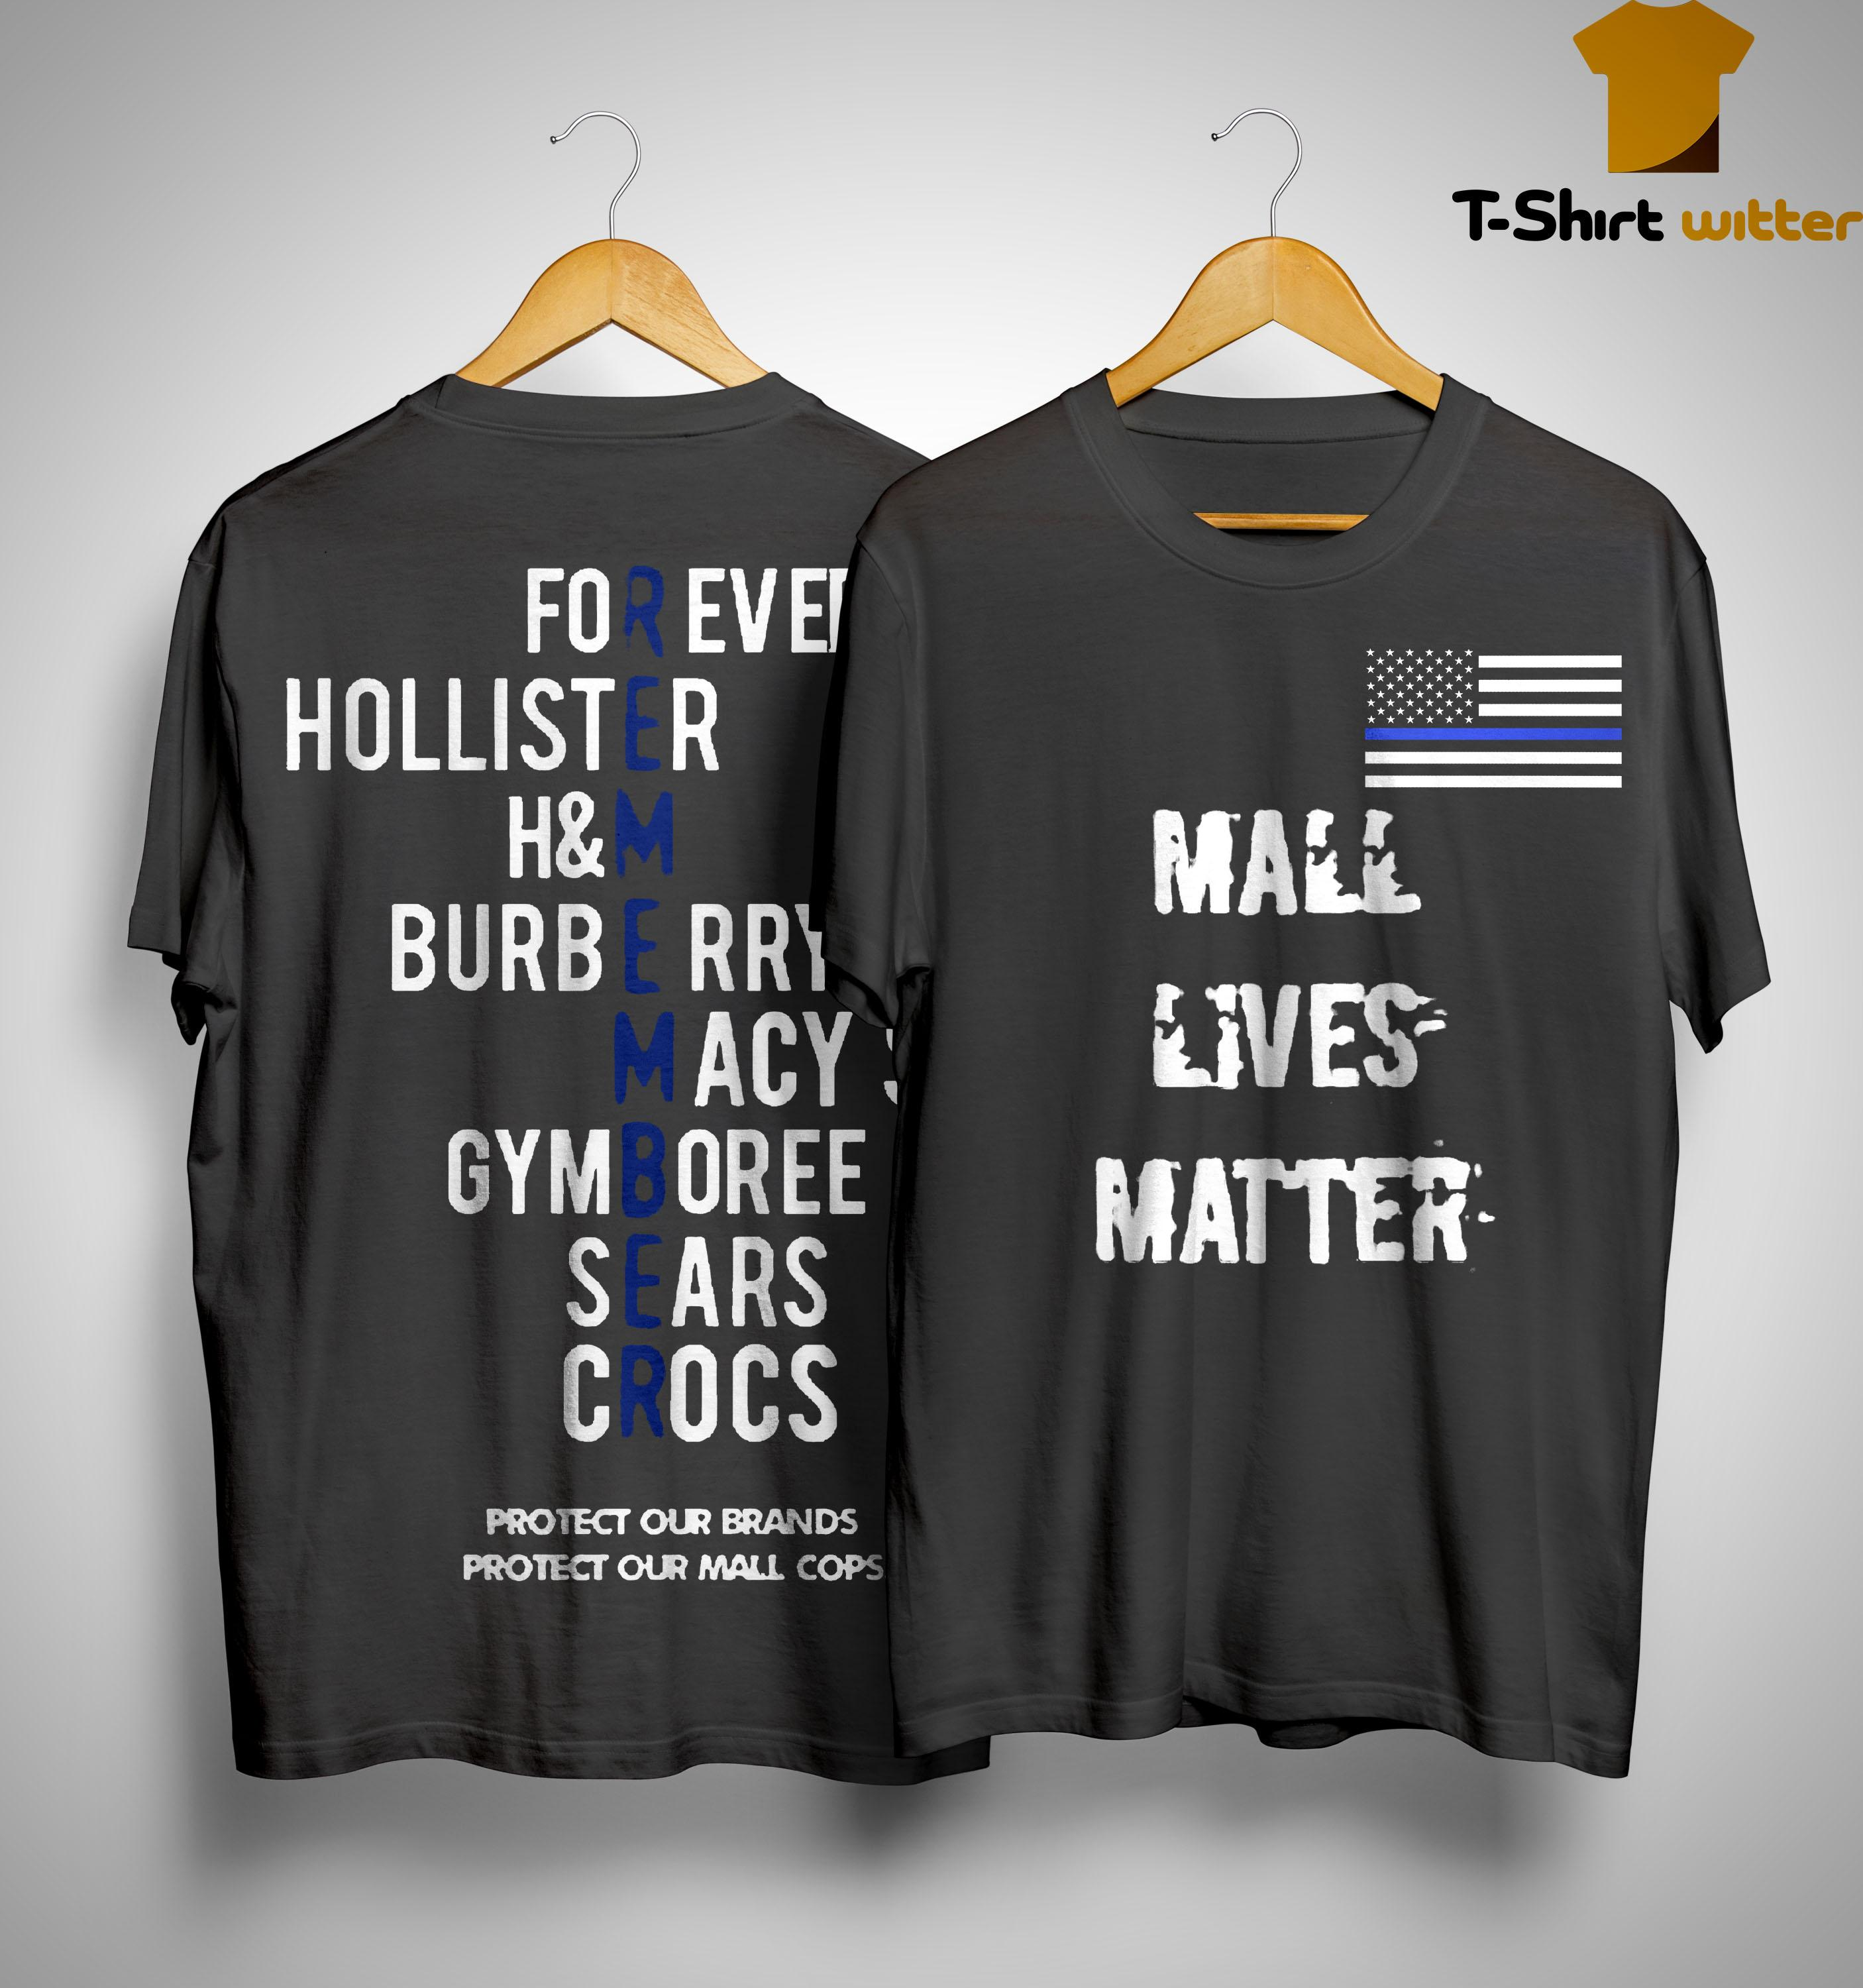 Mall Lives Matter Remember Protect Our Brands Shirt